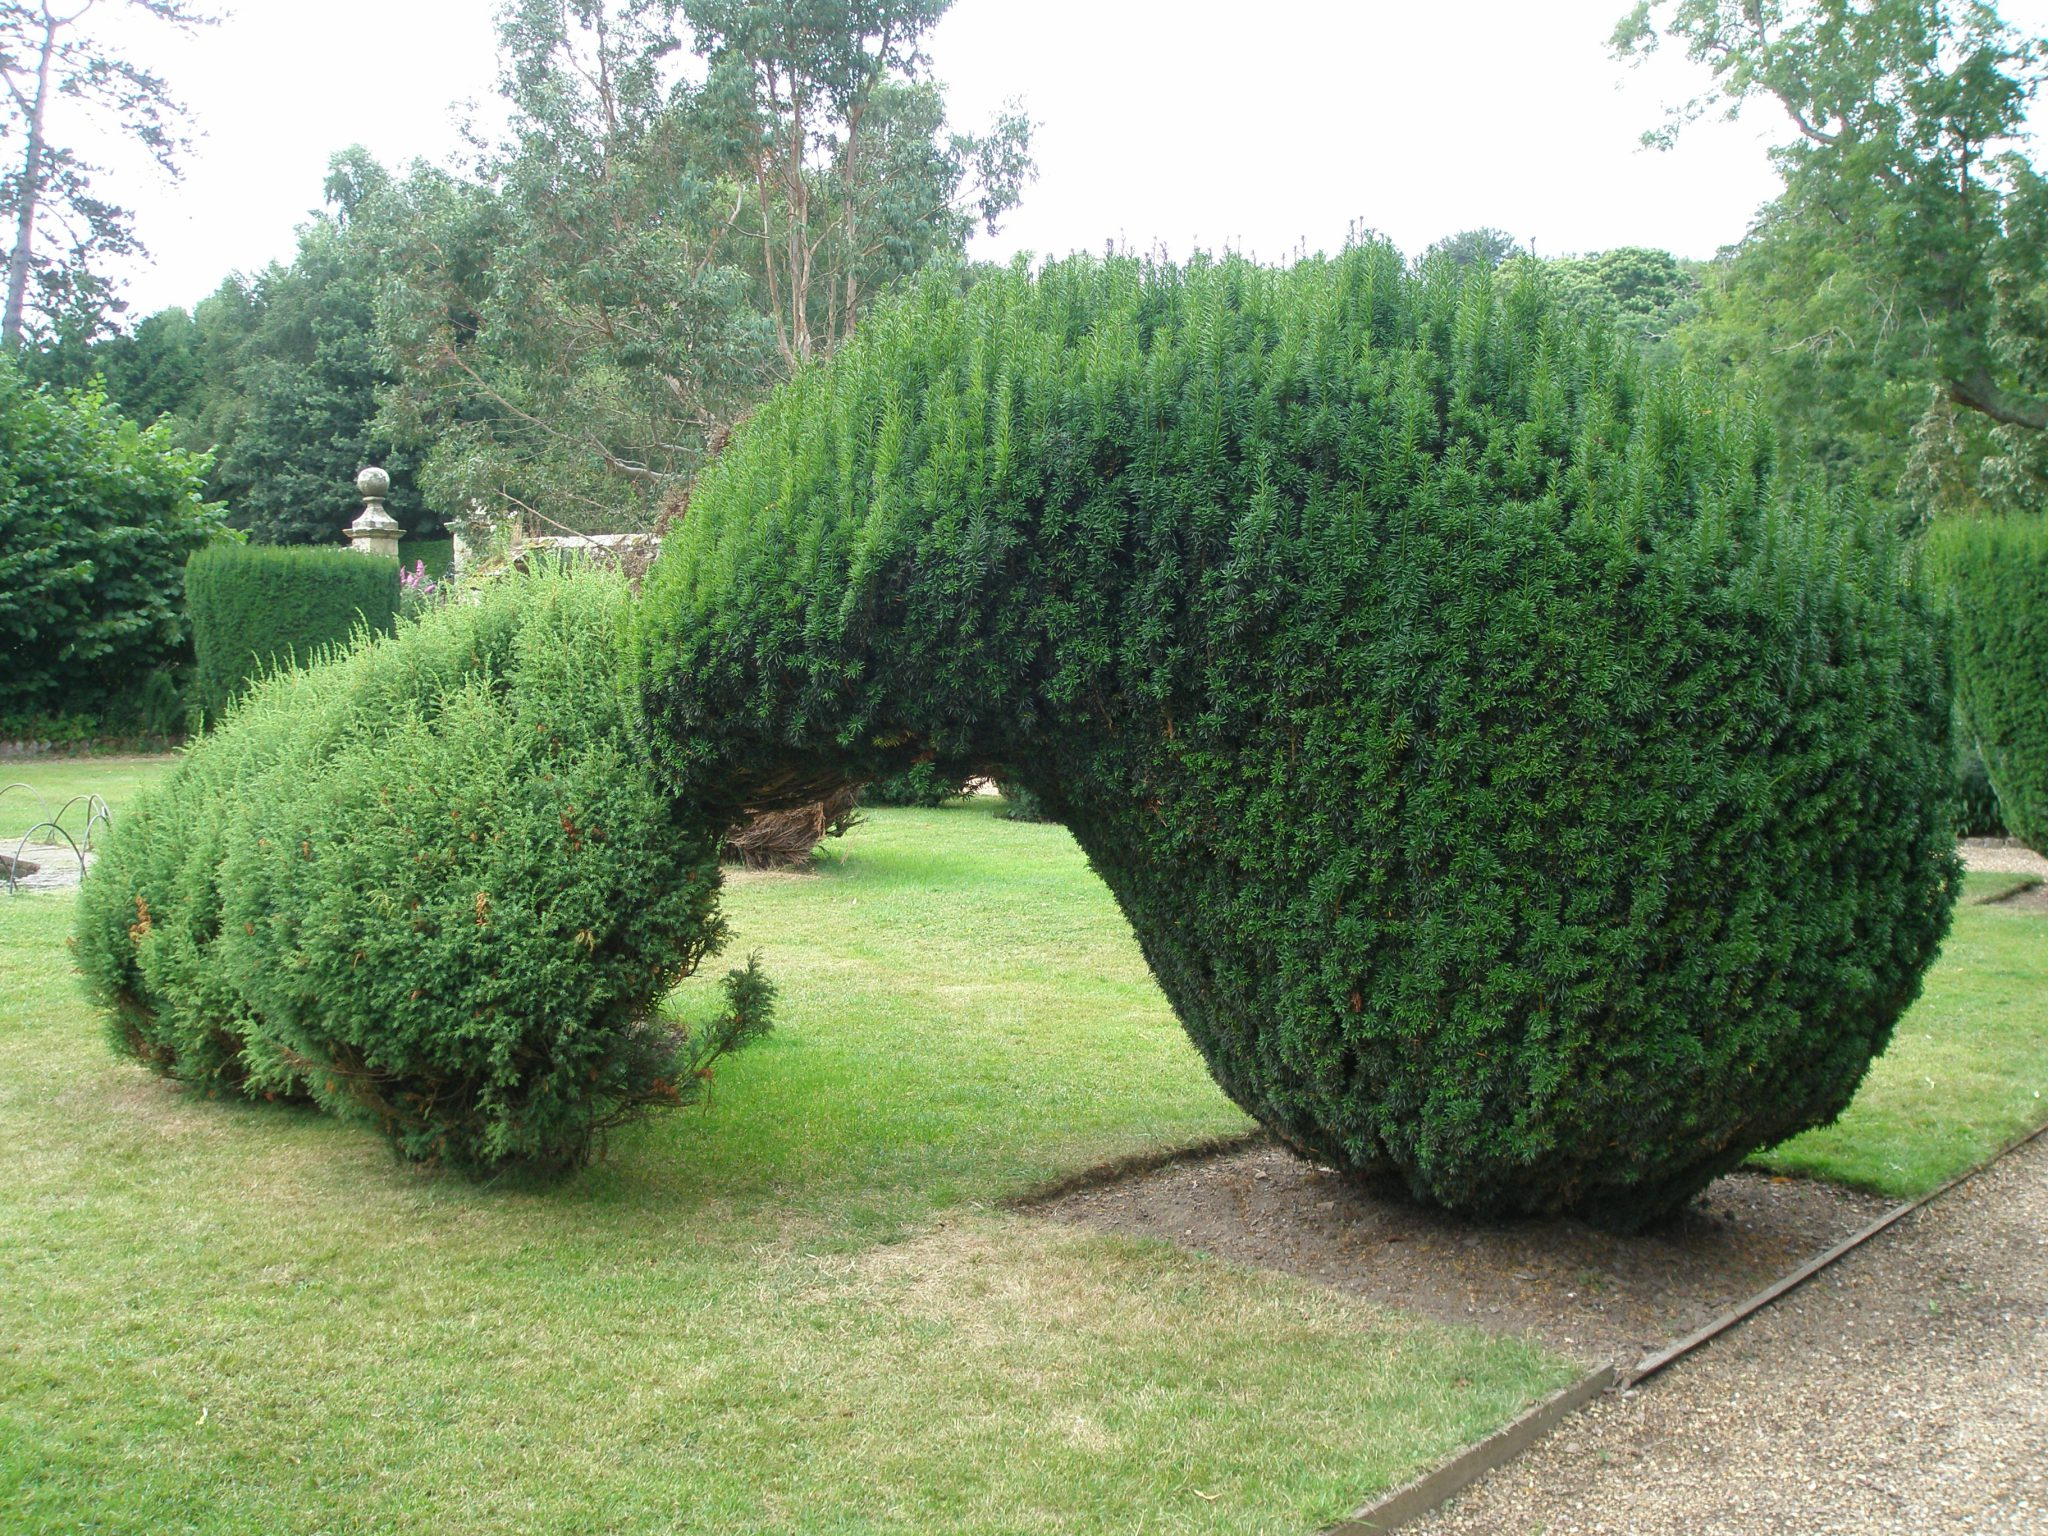 As Especially Tipsy Topiary, in The Drunken Garden